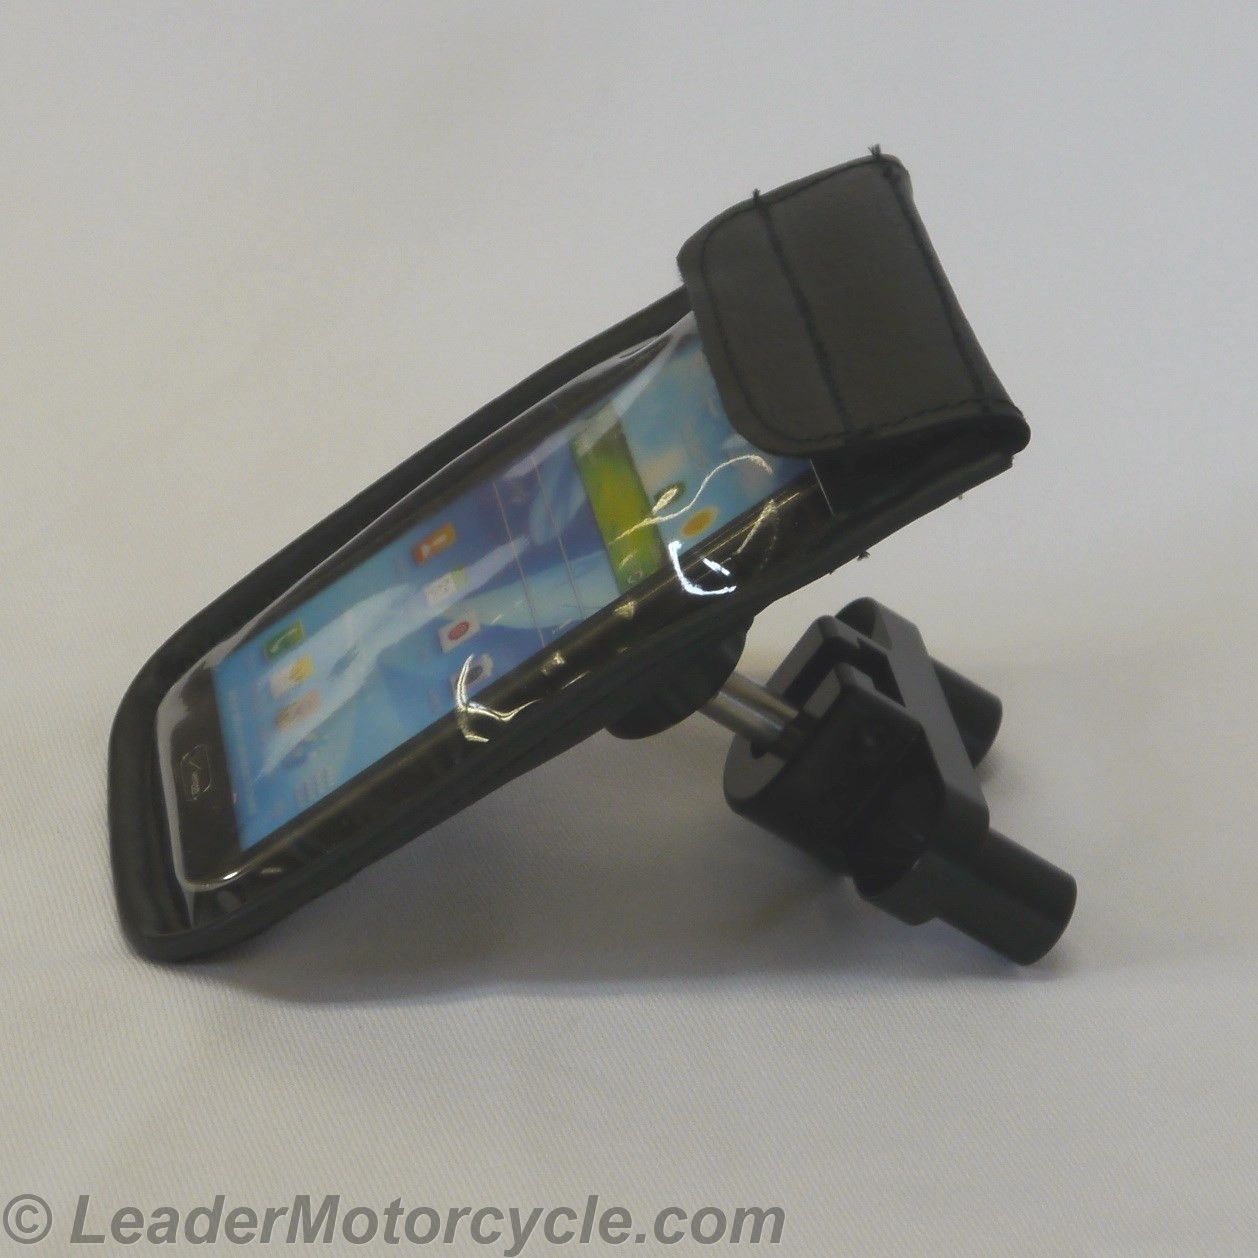 Caddy Buddy Waterproof Phone Mount for Can-Am Spyder (Black) The eCaddy Buddy waterproof phone/iPod mount is ideal if you're looking for protection from rain/wa